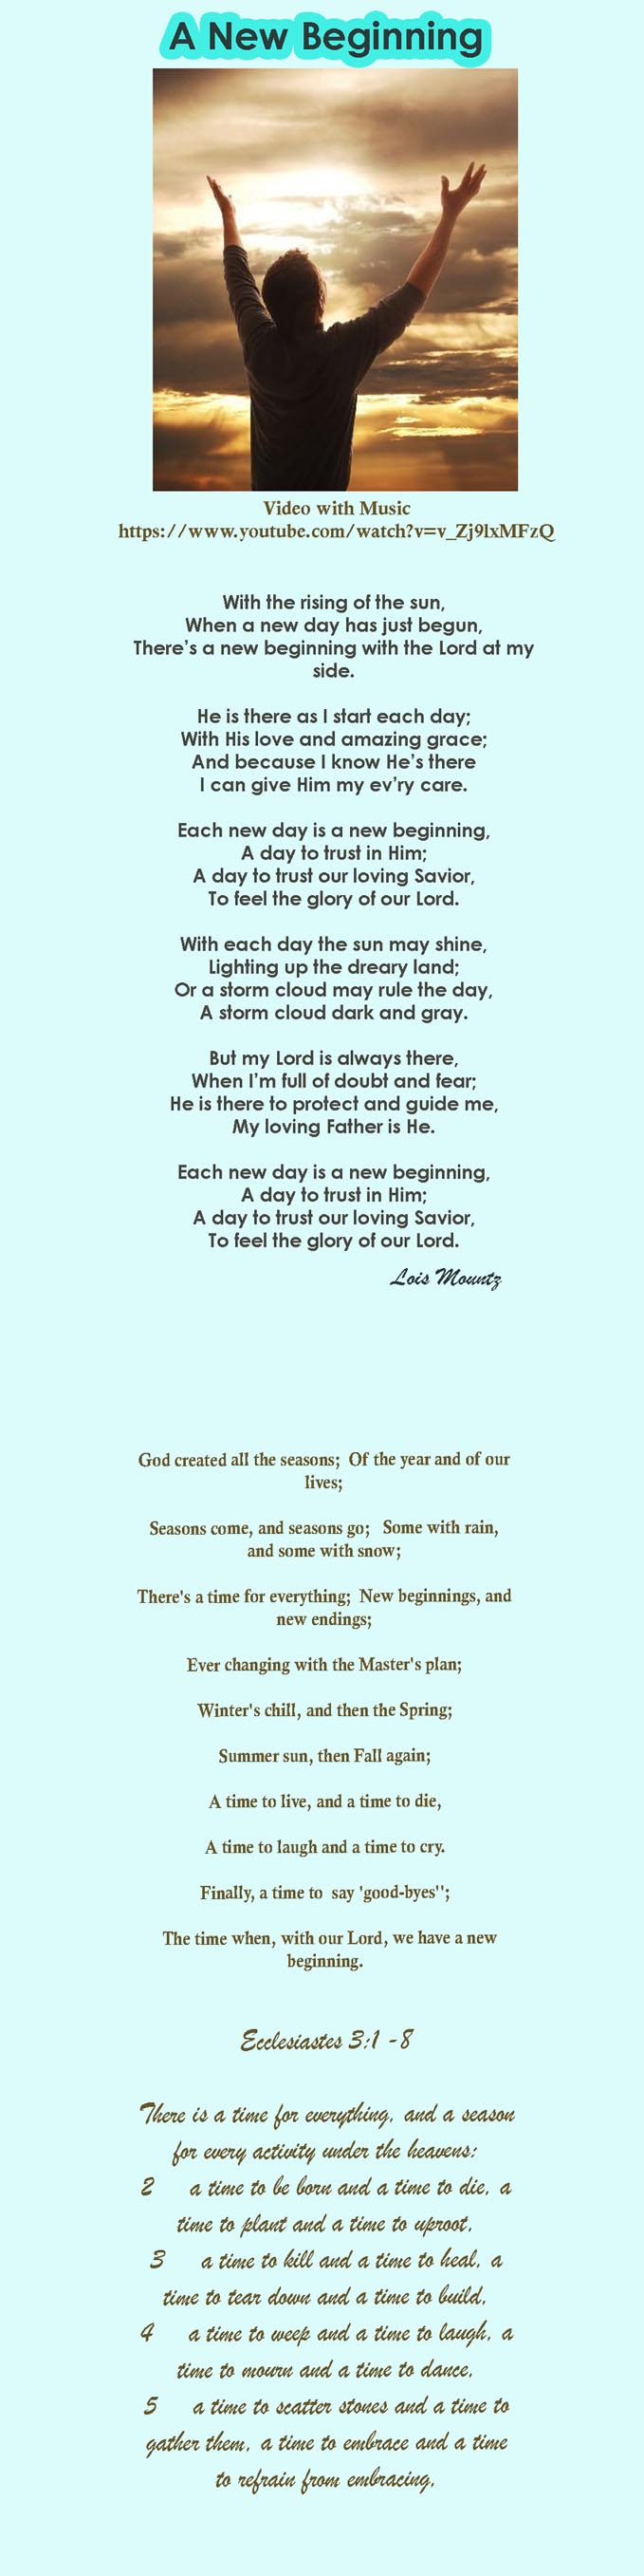 poem-and-scripture-copy